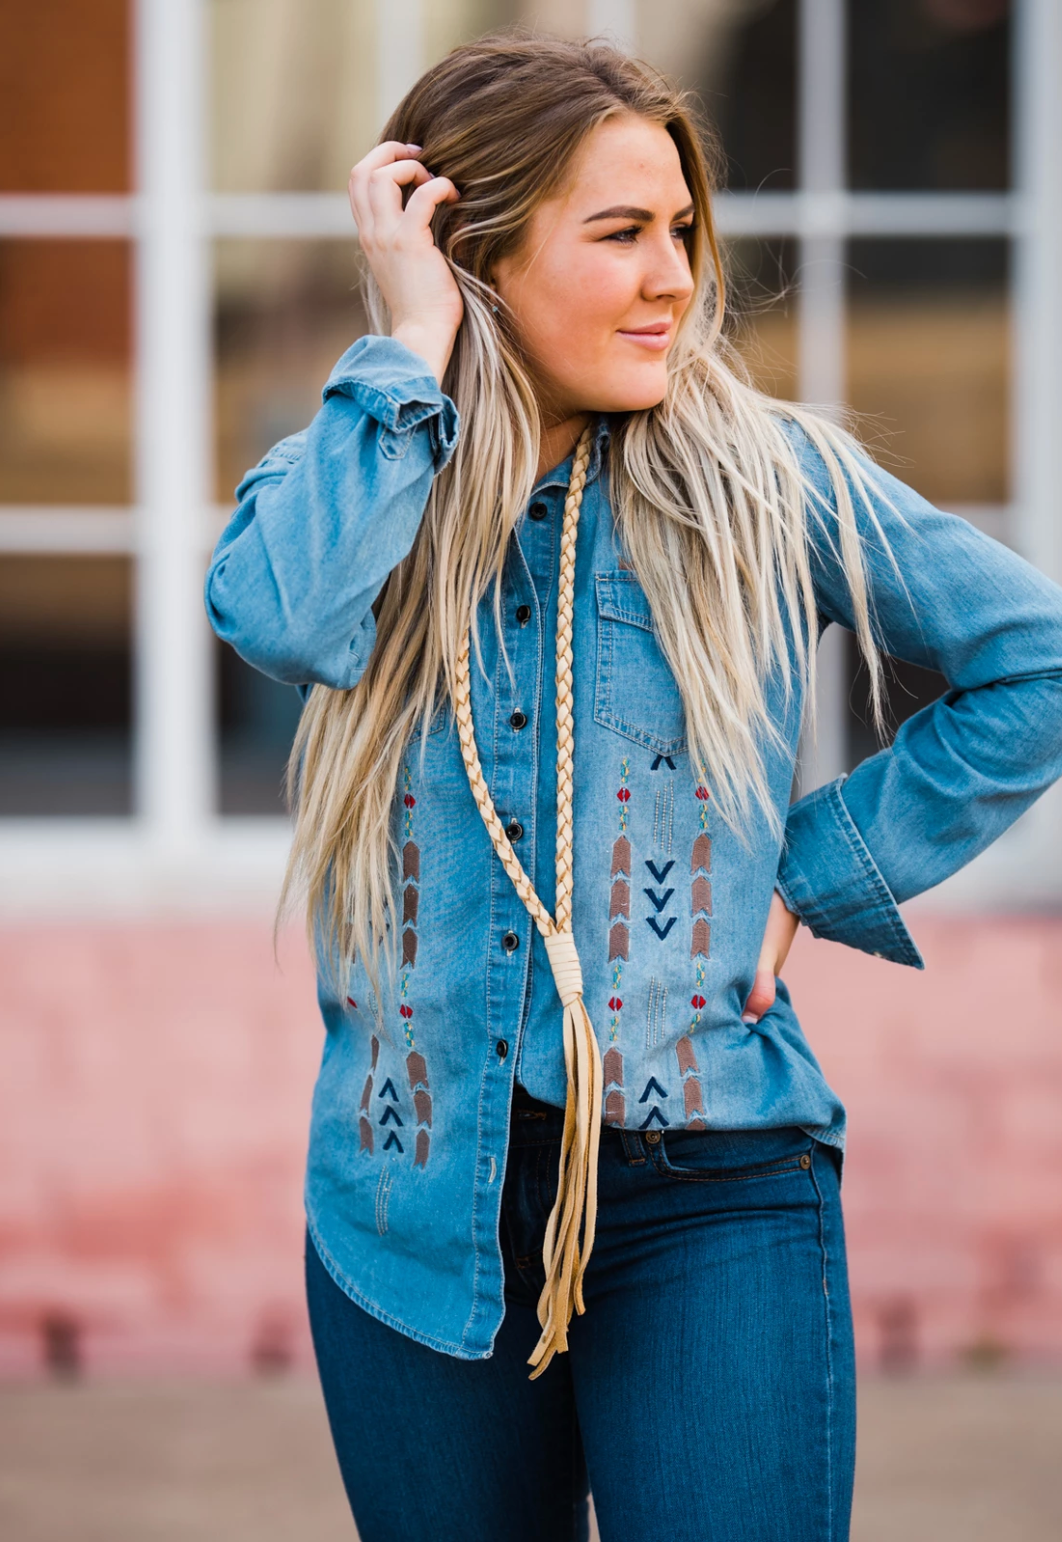 The Braided Bandit Leather Tassel Necklace - Medium Length